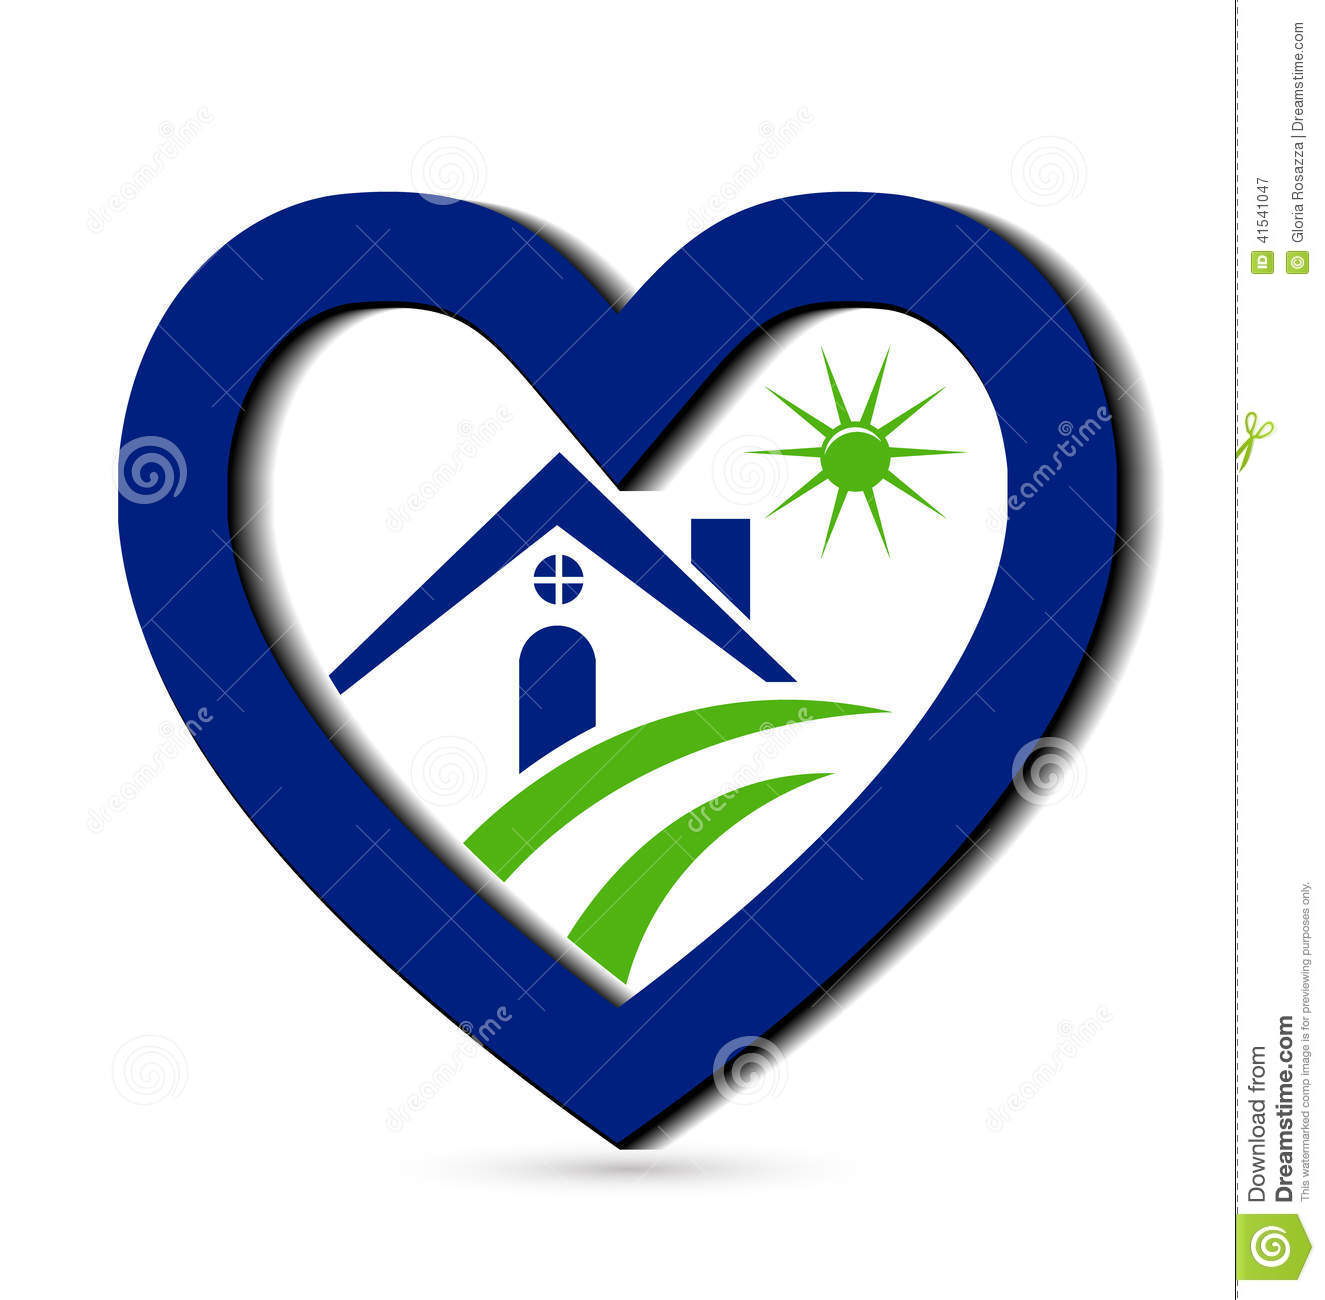 House And Blue Heart Logo Stock Vector Image 41541047